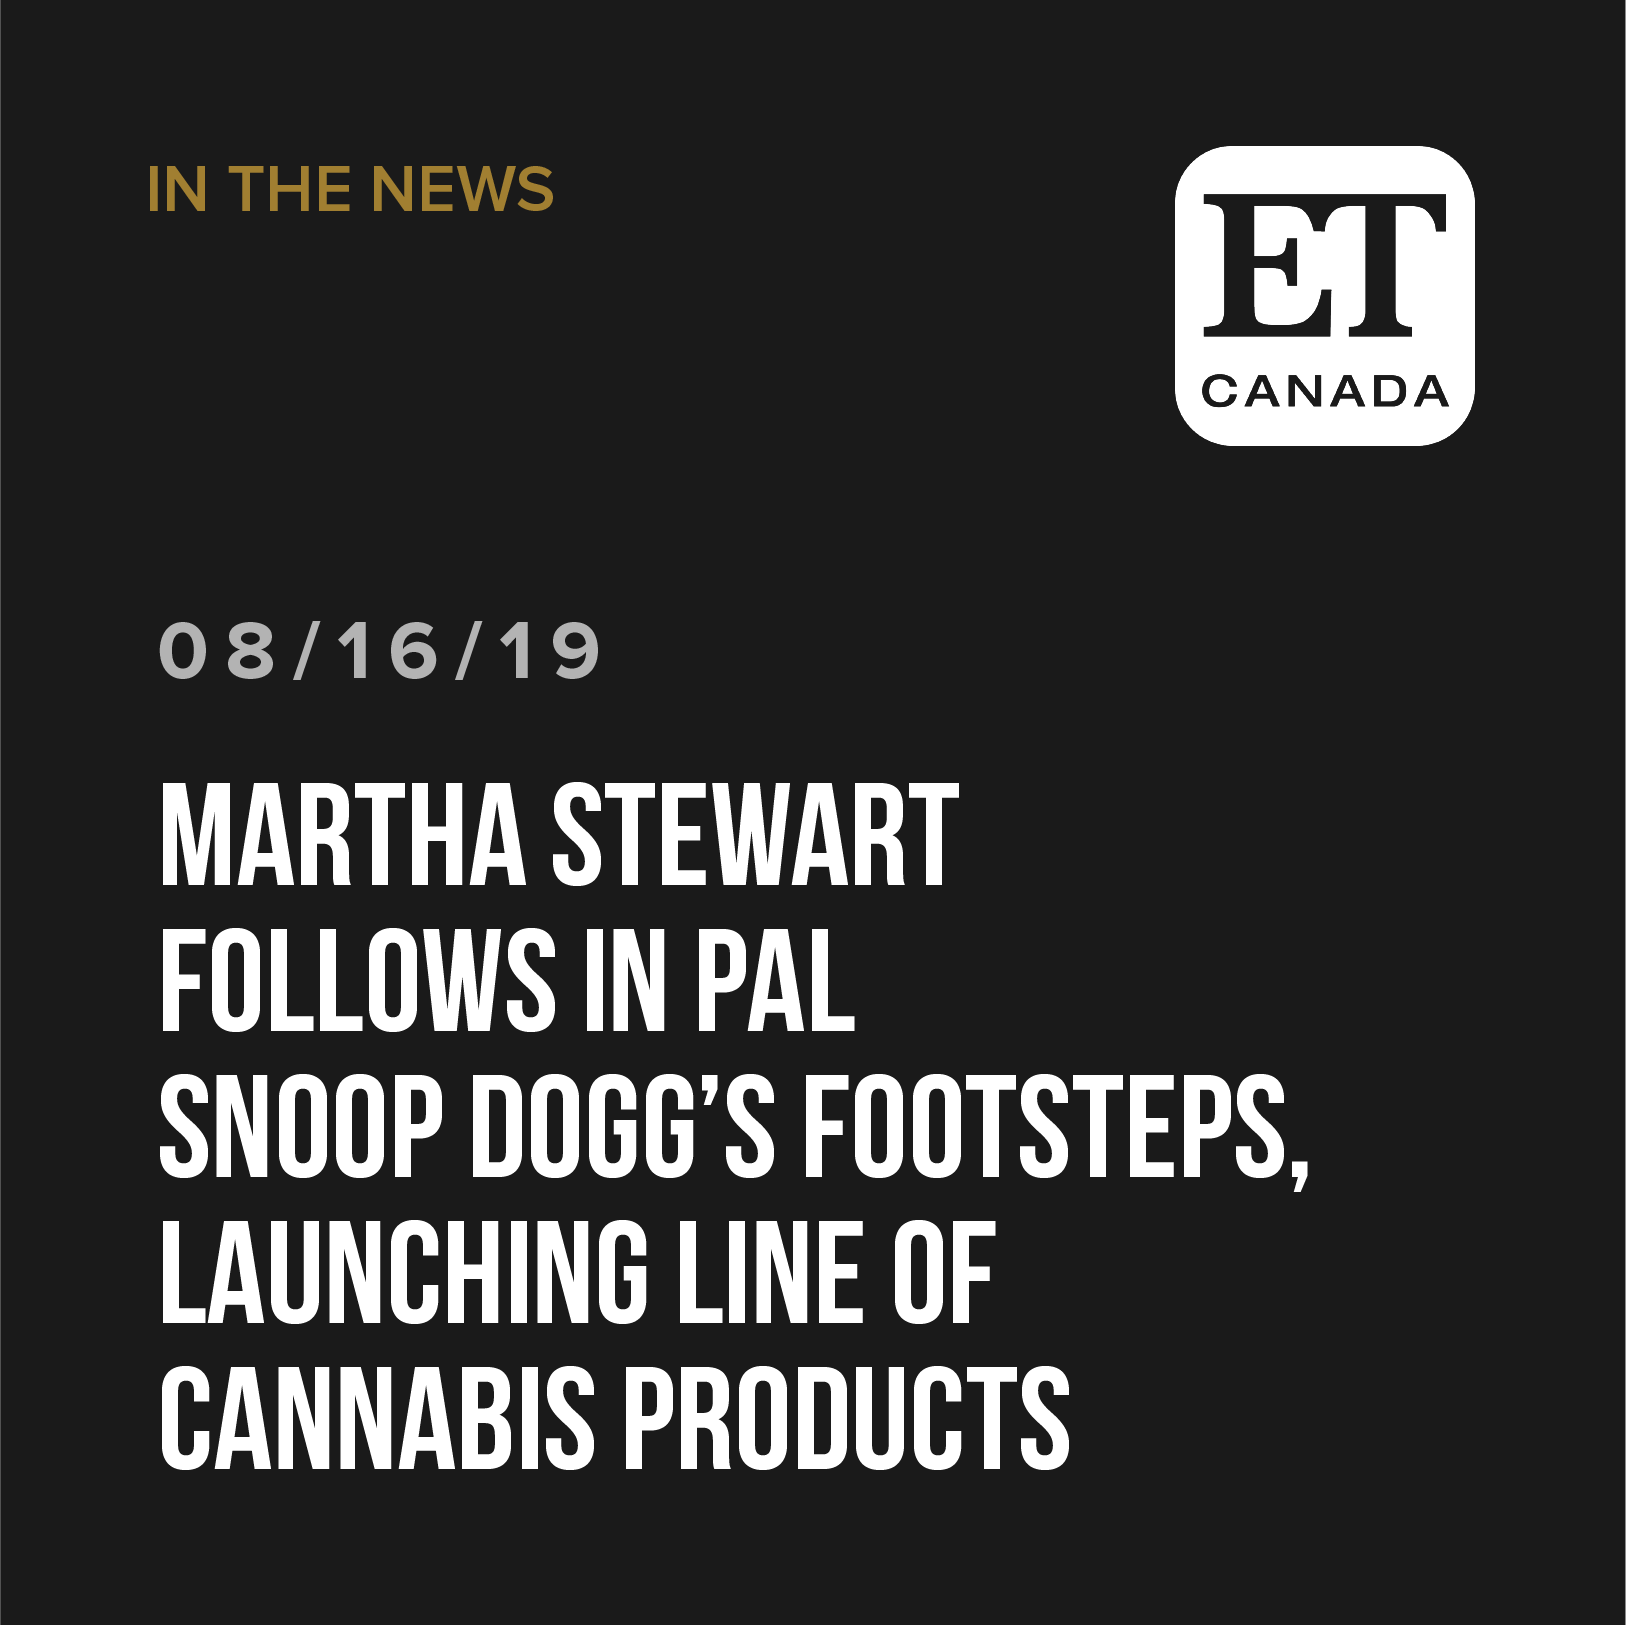 Martha Stewart Follows In Pal Snoop Dogg's Footsteps, Launching Line Of Cannabis Products